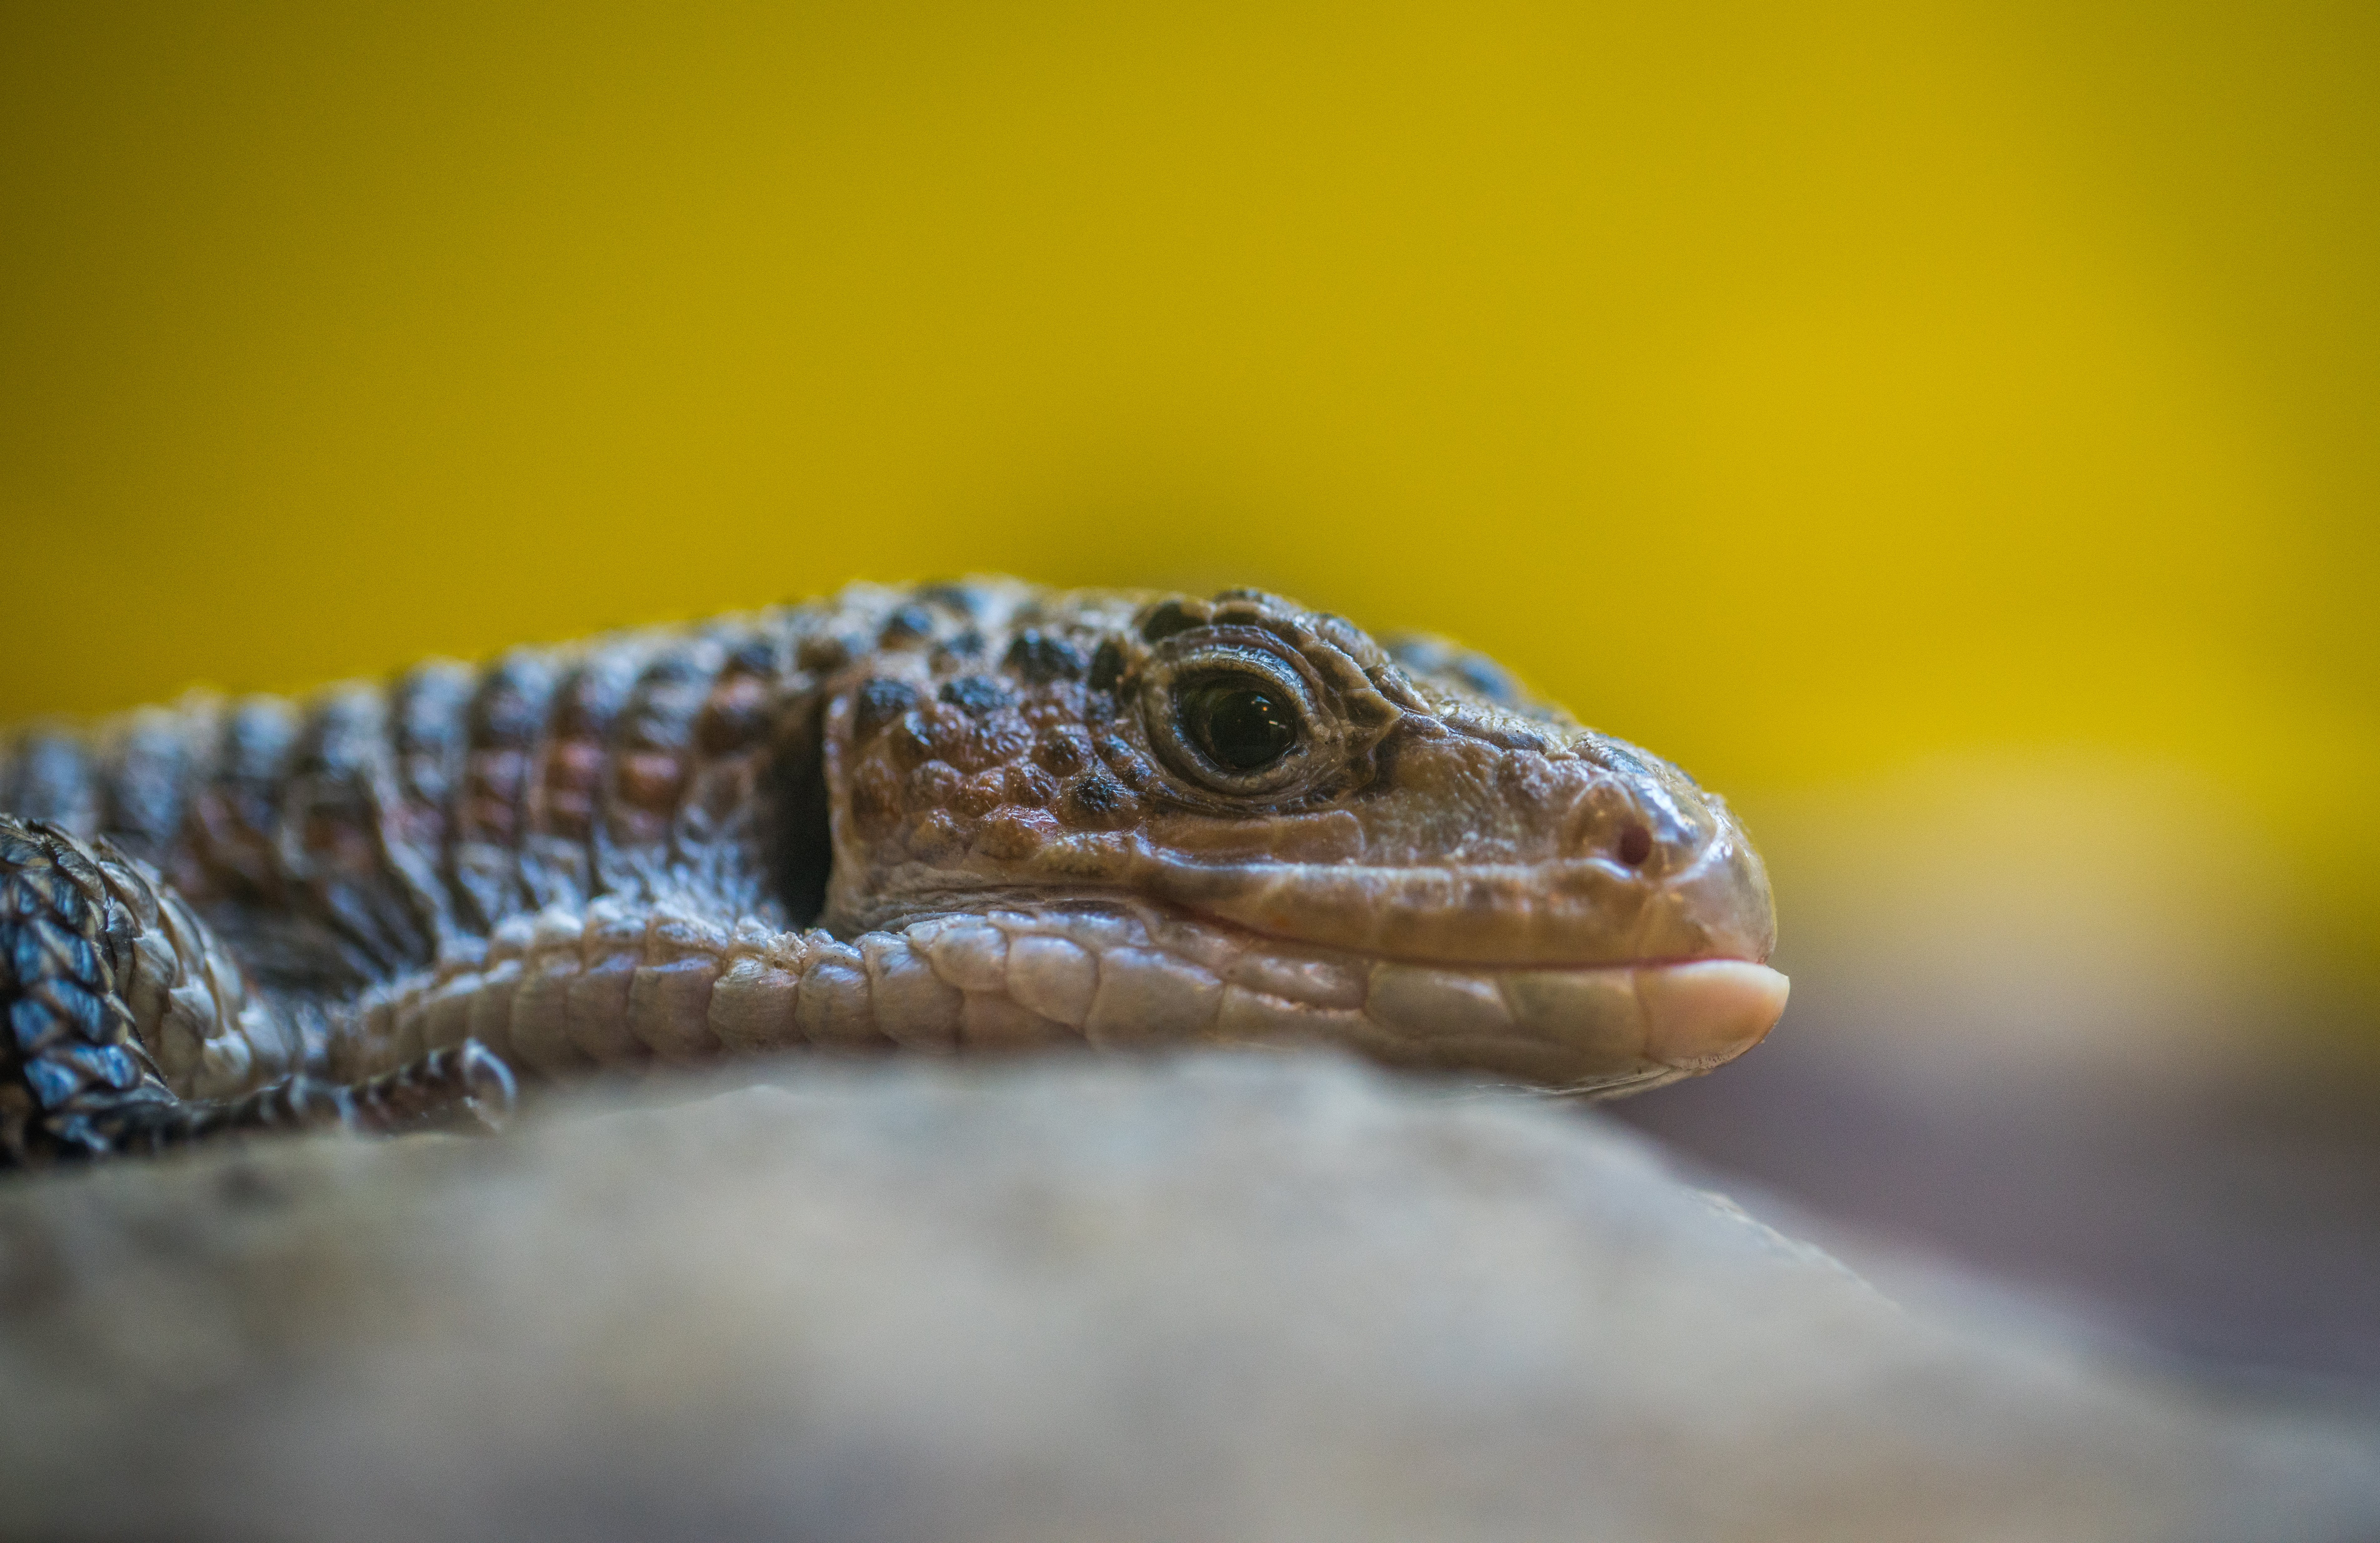 Gray Reptile Close-up Photography